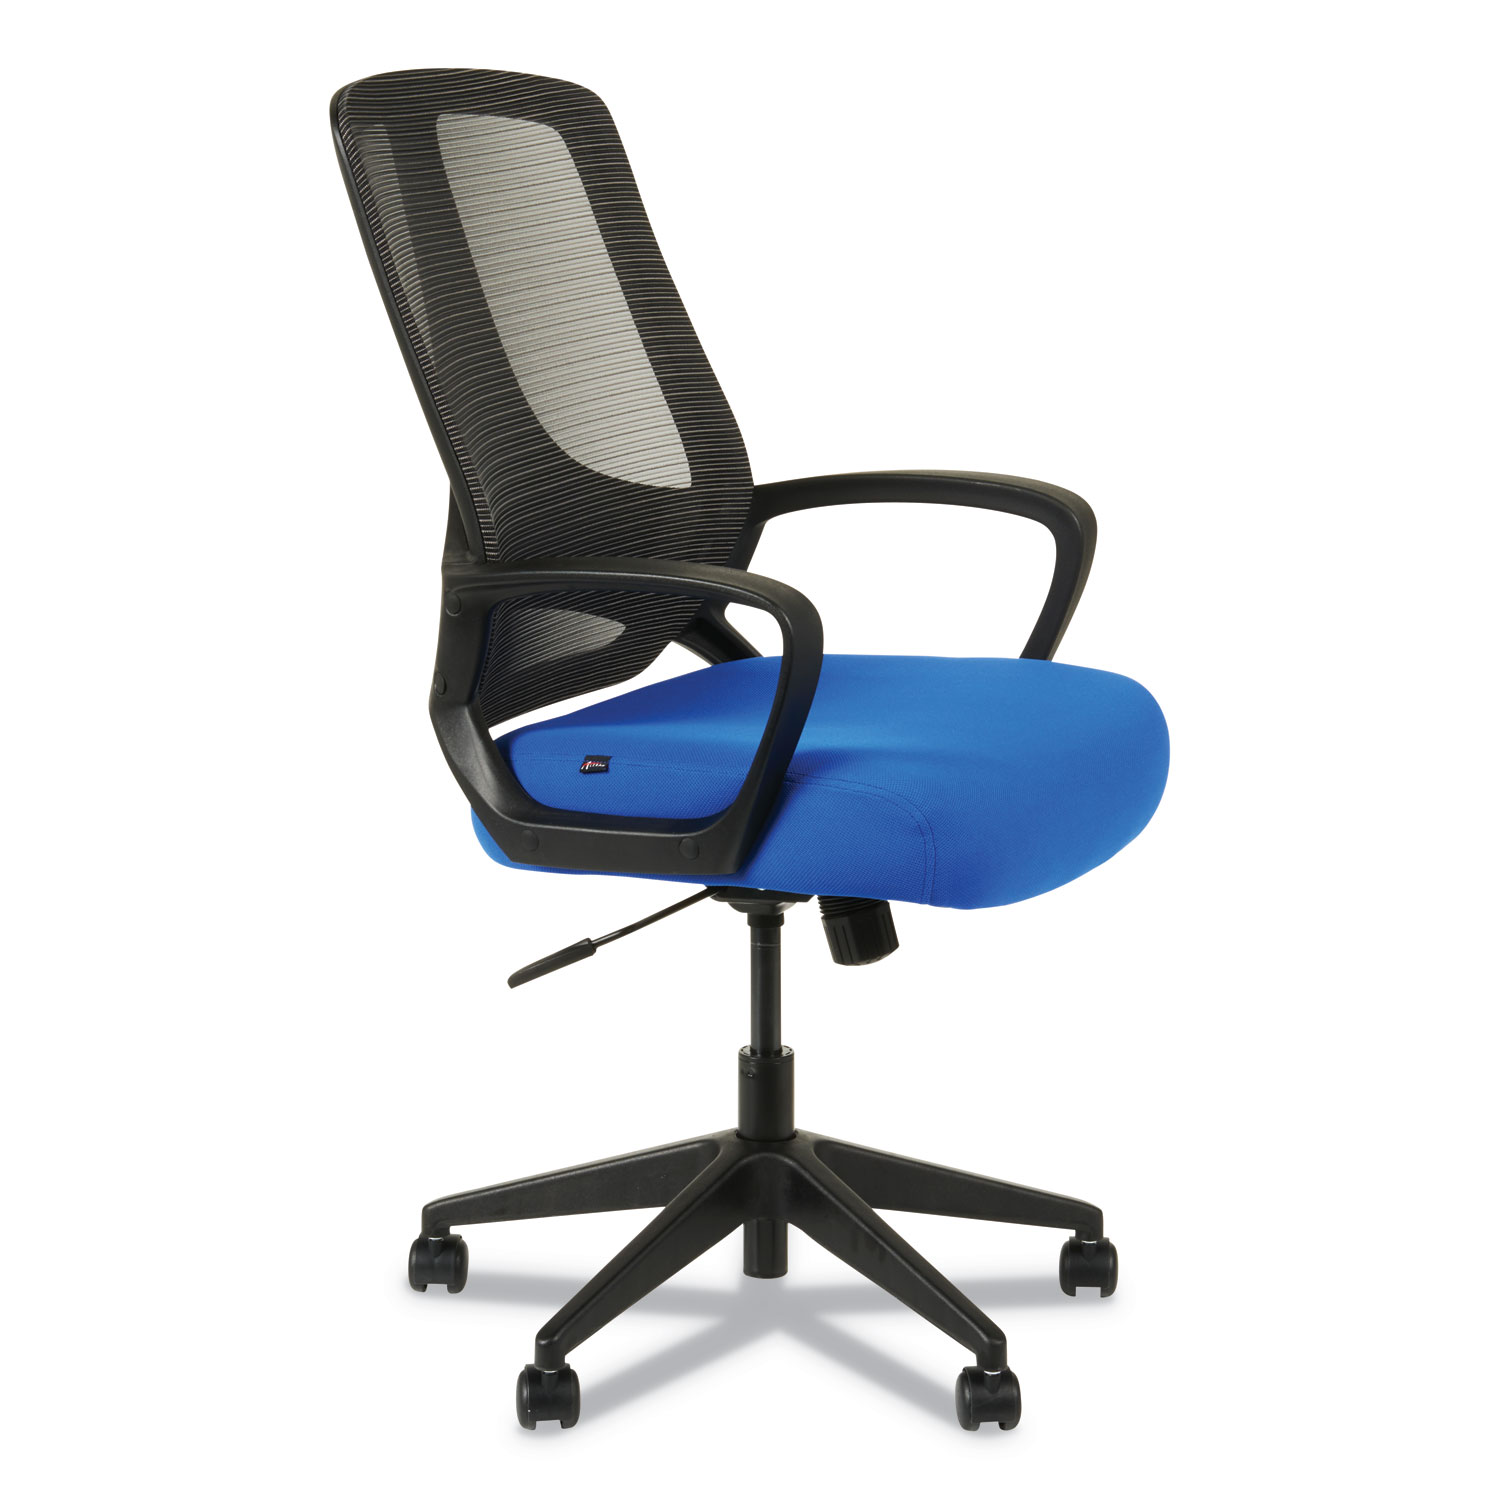 Alera Mb Series Mesh Mid Back Office Chair Supports Up To 275 Lbs Blue Seat Black Back Black Base